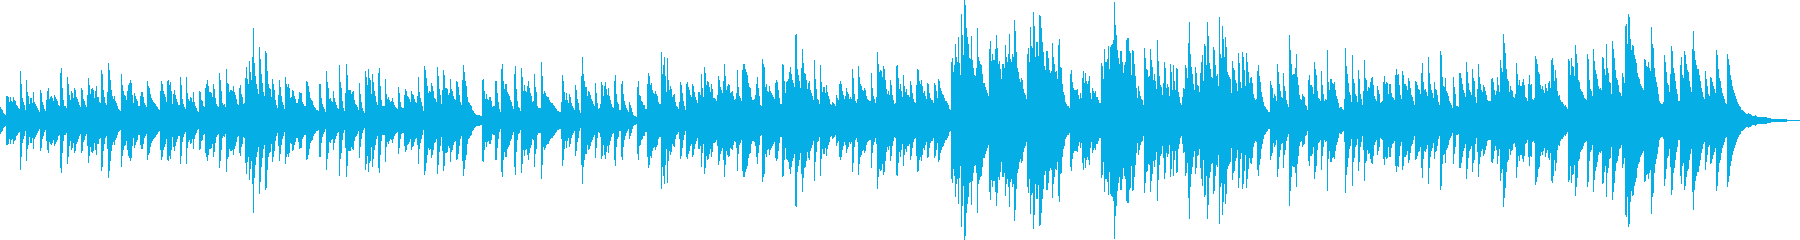 A sad and powerful piano ballad song's reproduced waveform